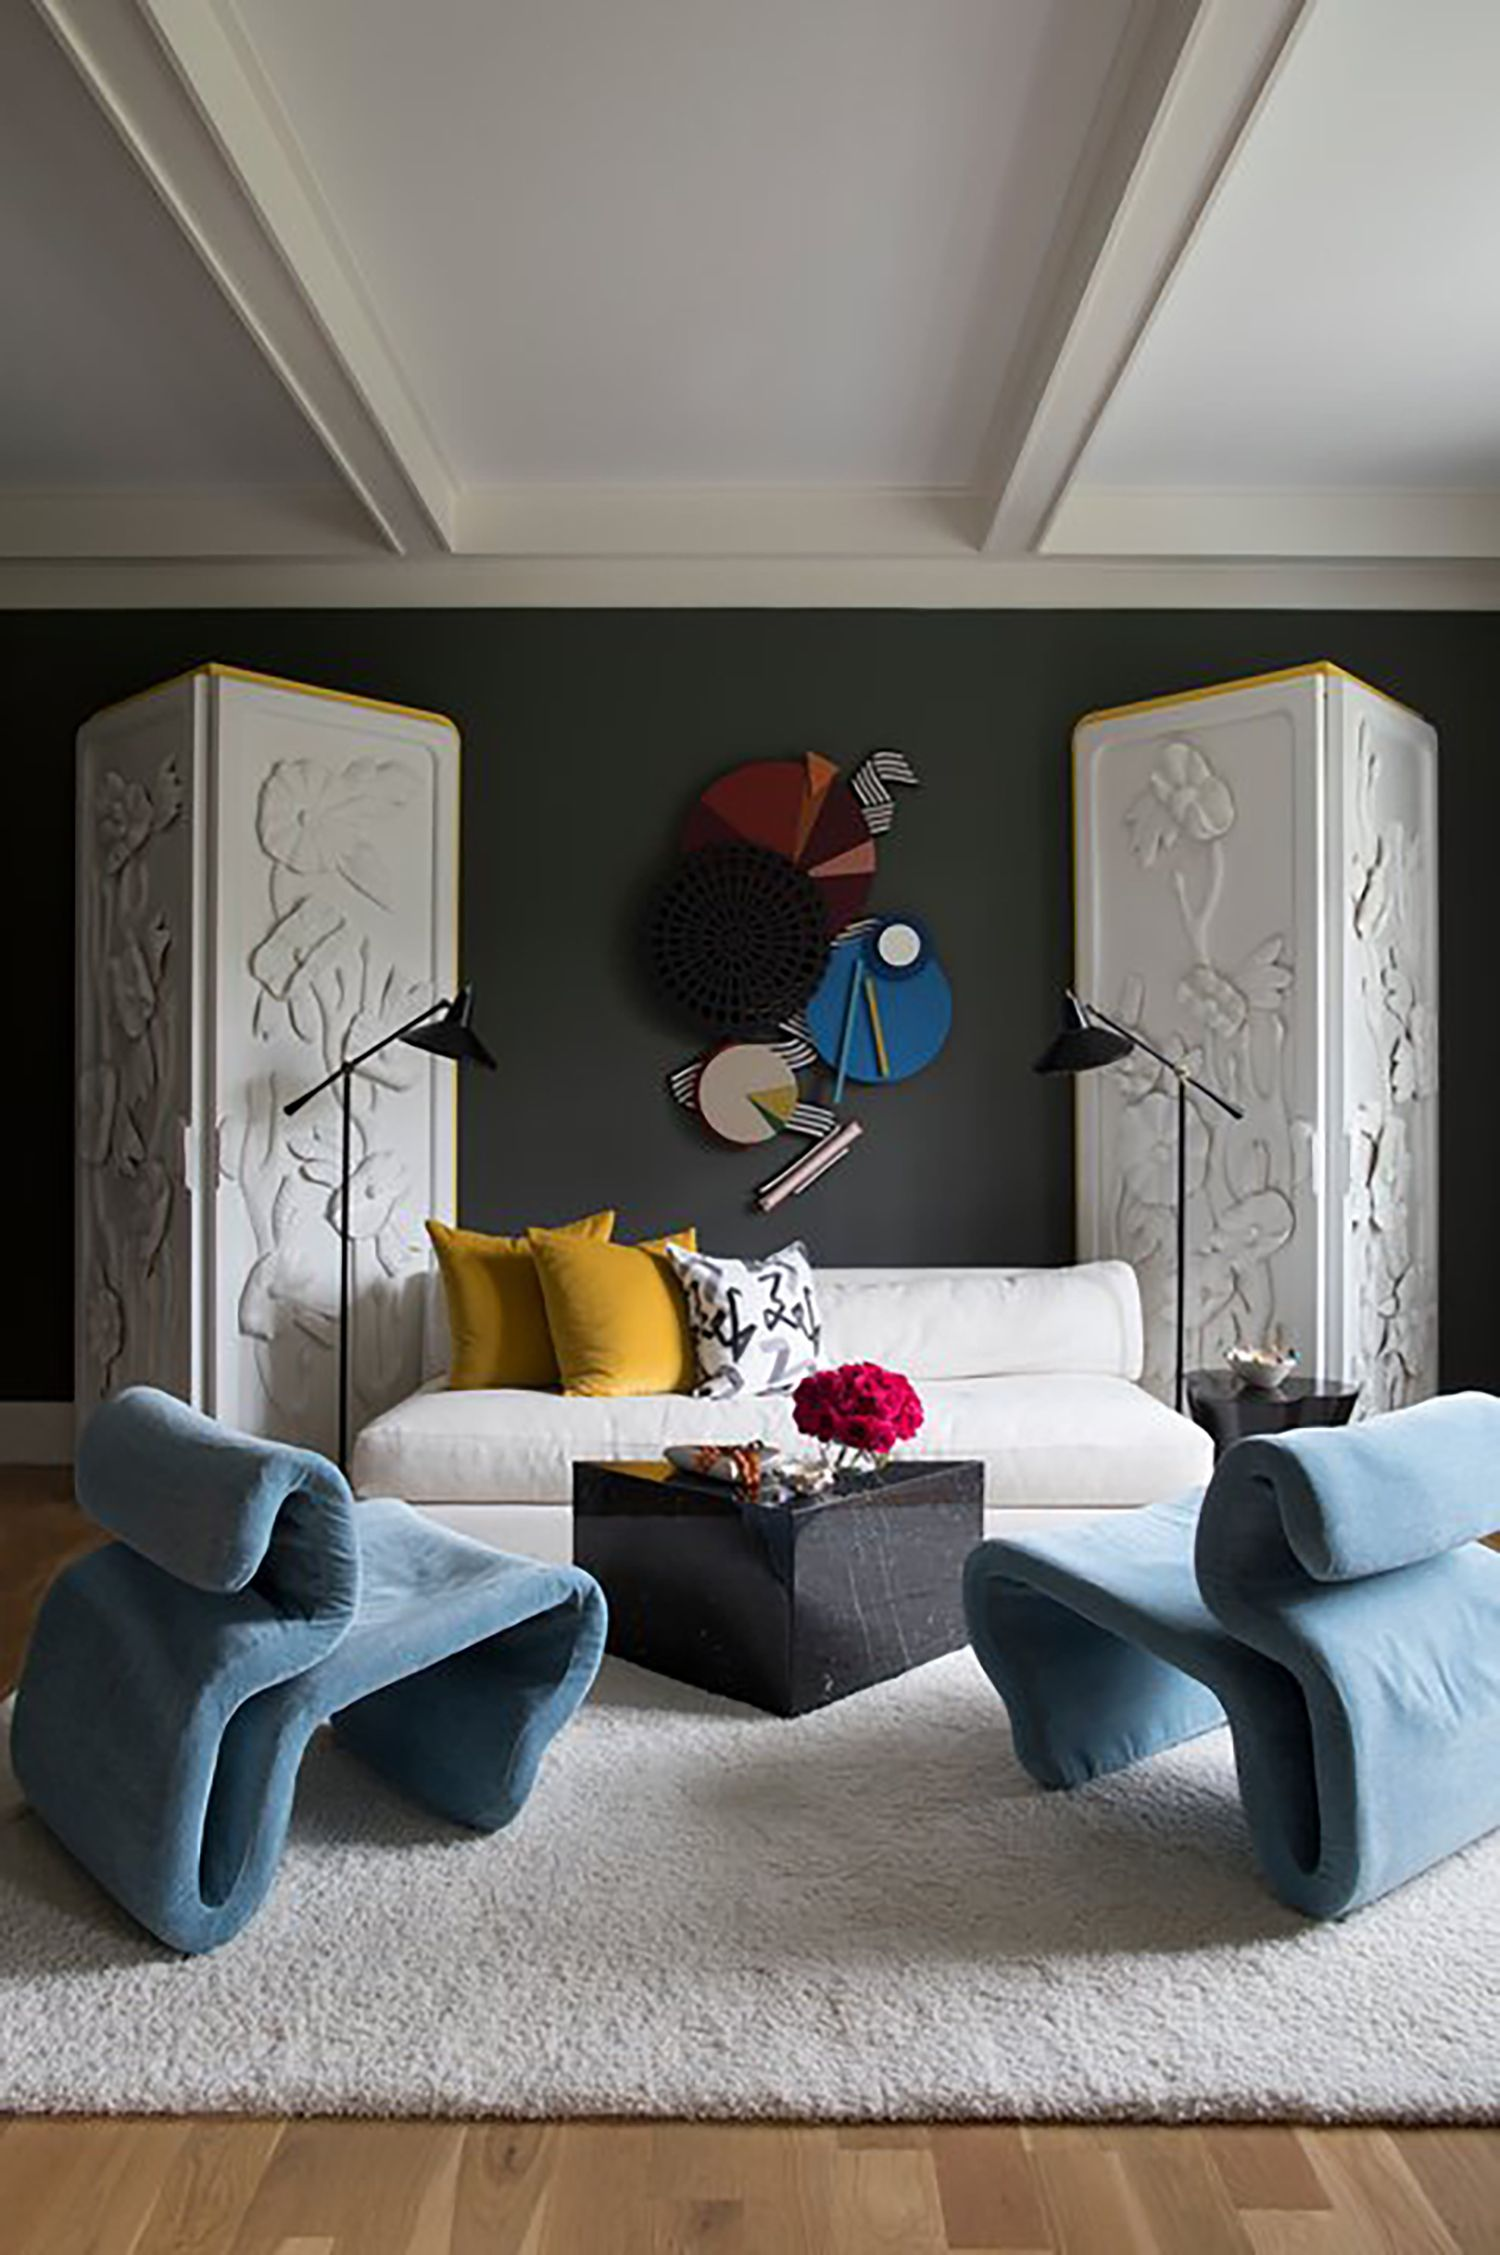 John edward linden/ getty images after writing so many posts last year about what our homes will be like after the pandemic and interior design lessons from the coronav. 15 Home Decor Trends For 2021 What Are The Decorating Trends For 2021